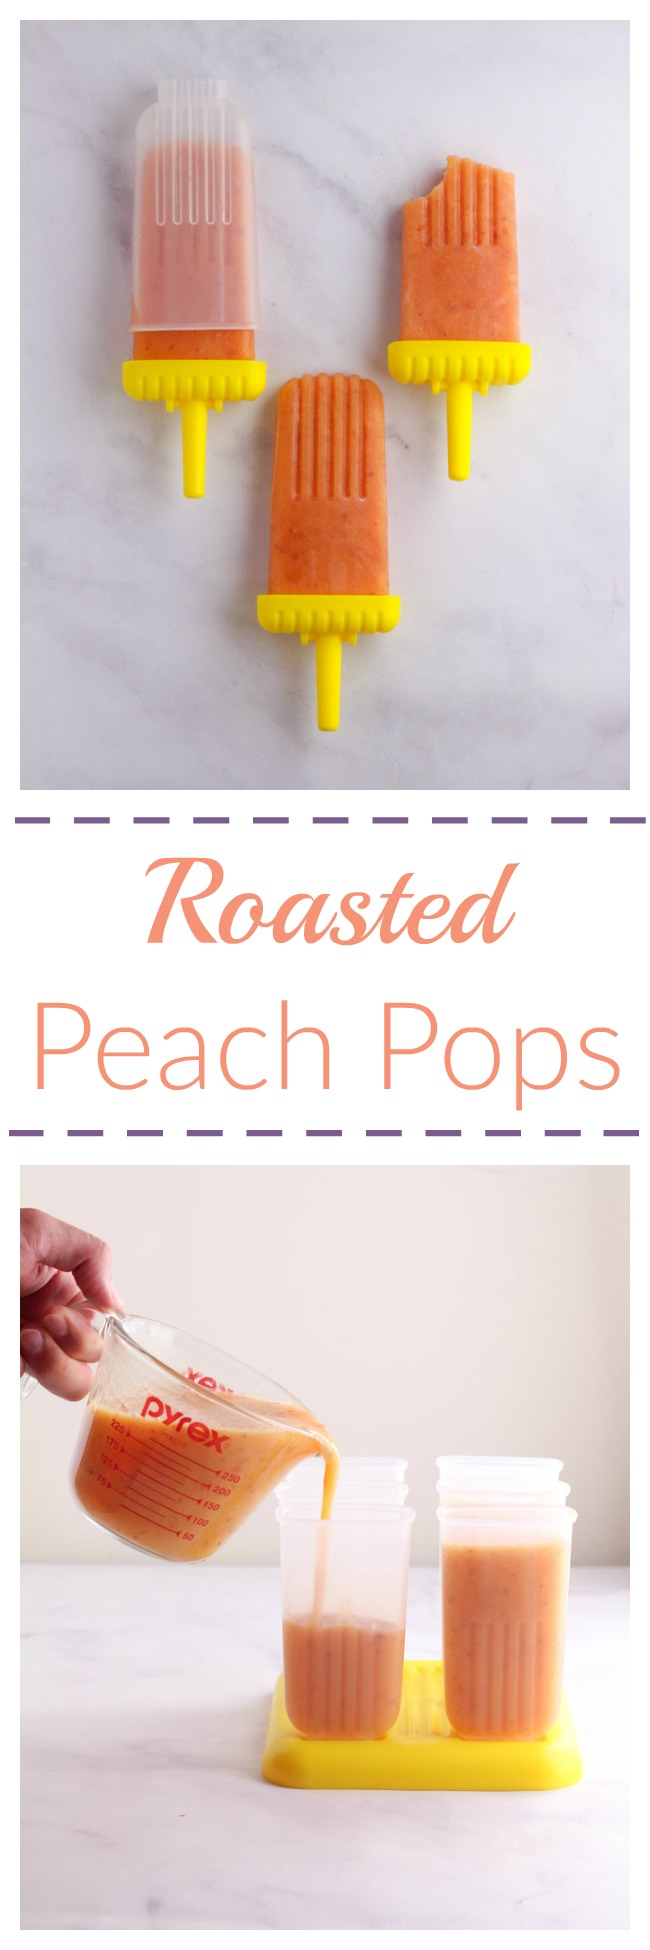 This recipe for roasted peach pops is simple, refreshing, and like a peach pie in frozen form.